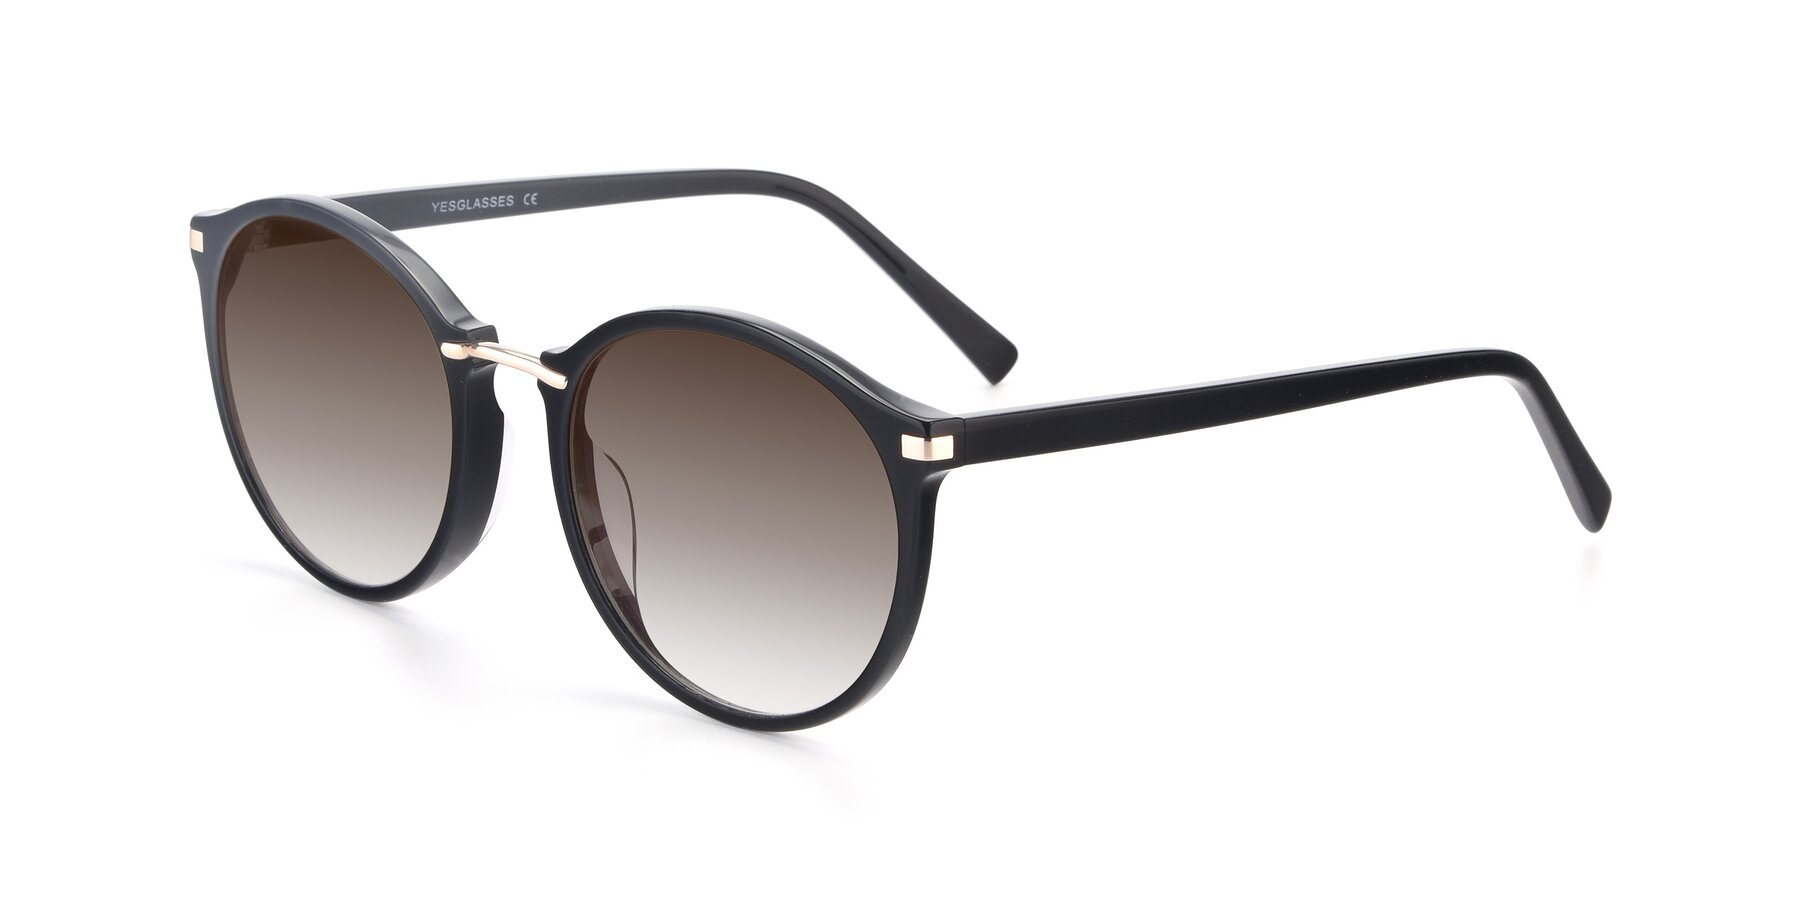 Angle of Casper in Black with Brown Gradient Lenses